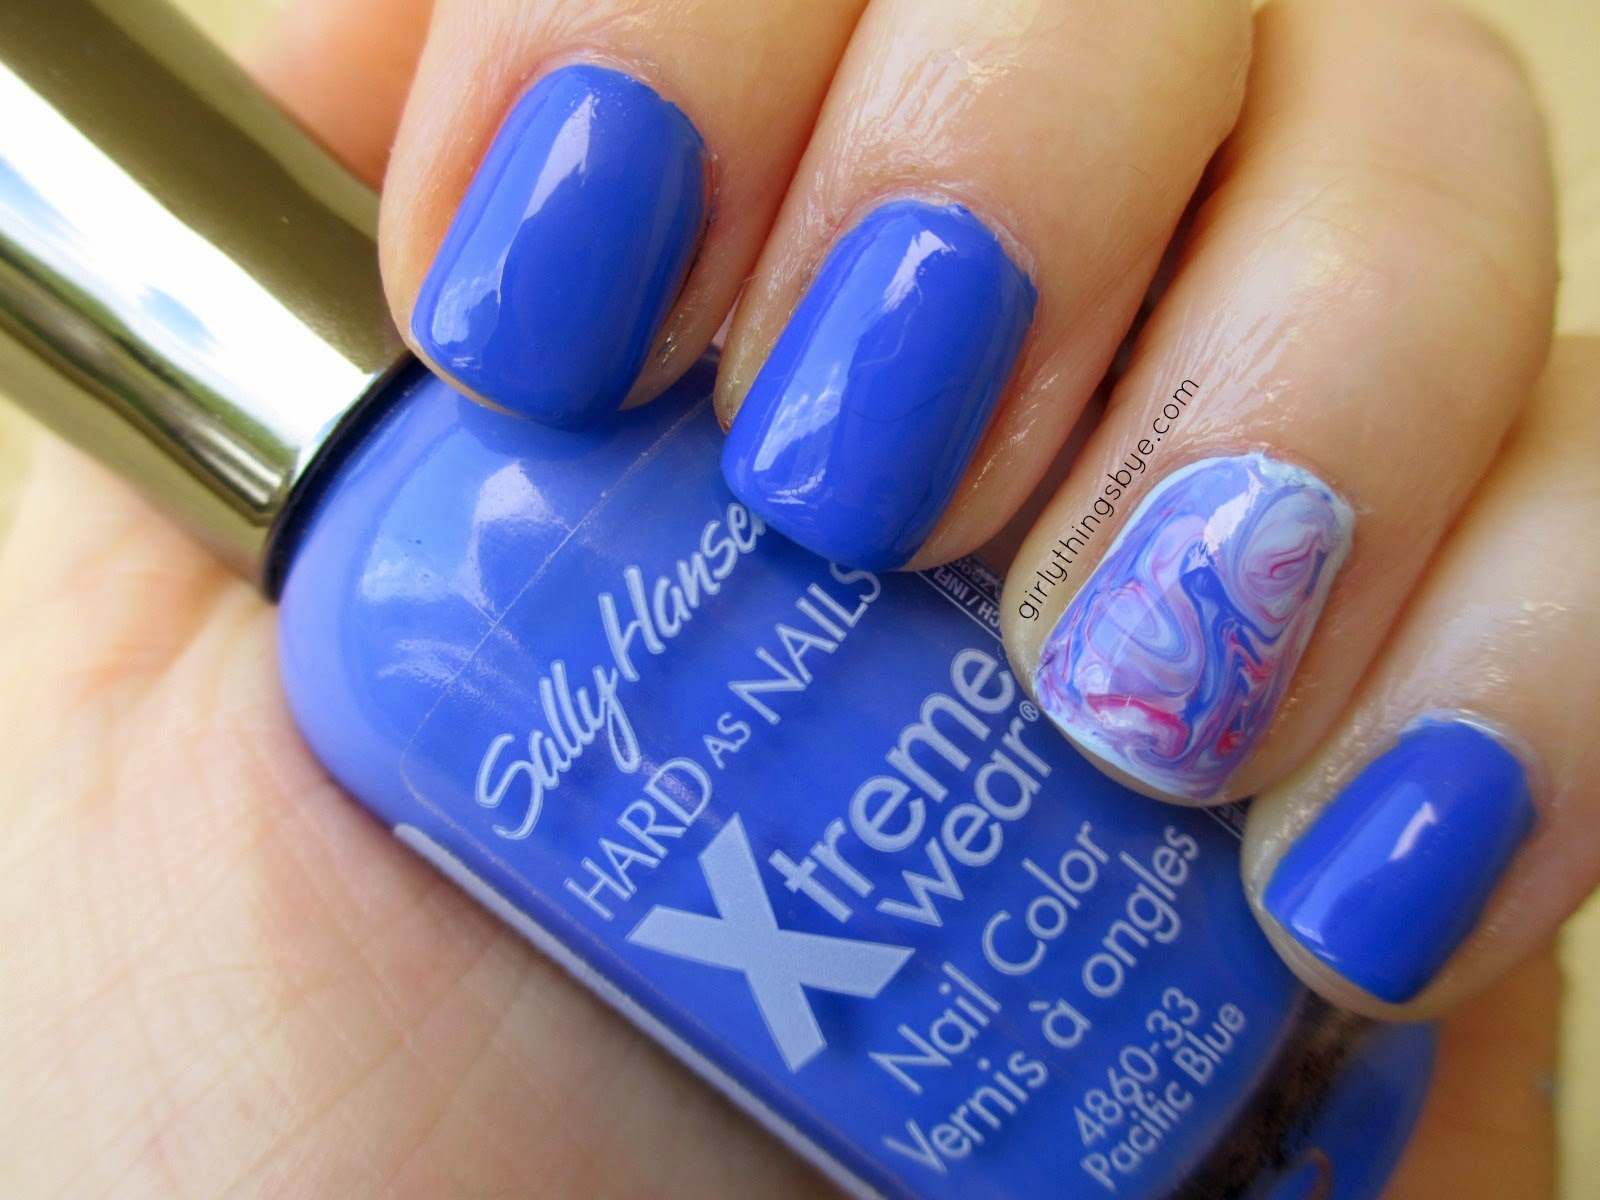 Sally Hansen Pacific Blue, swatch, nail polish, marble nails